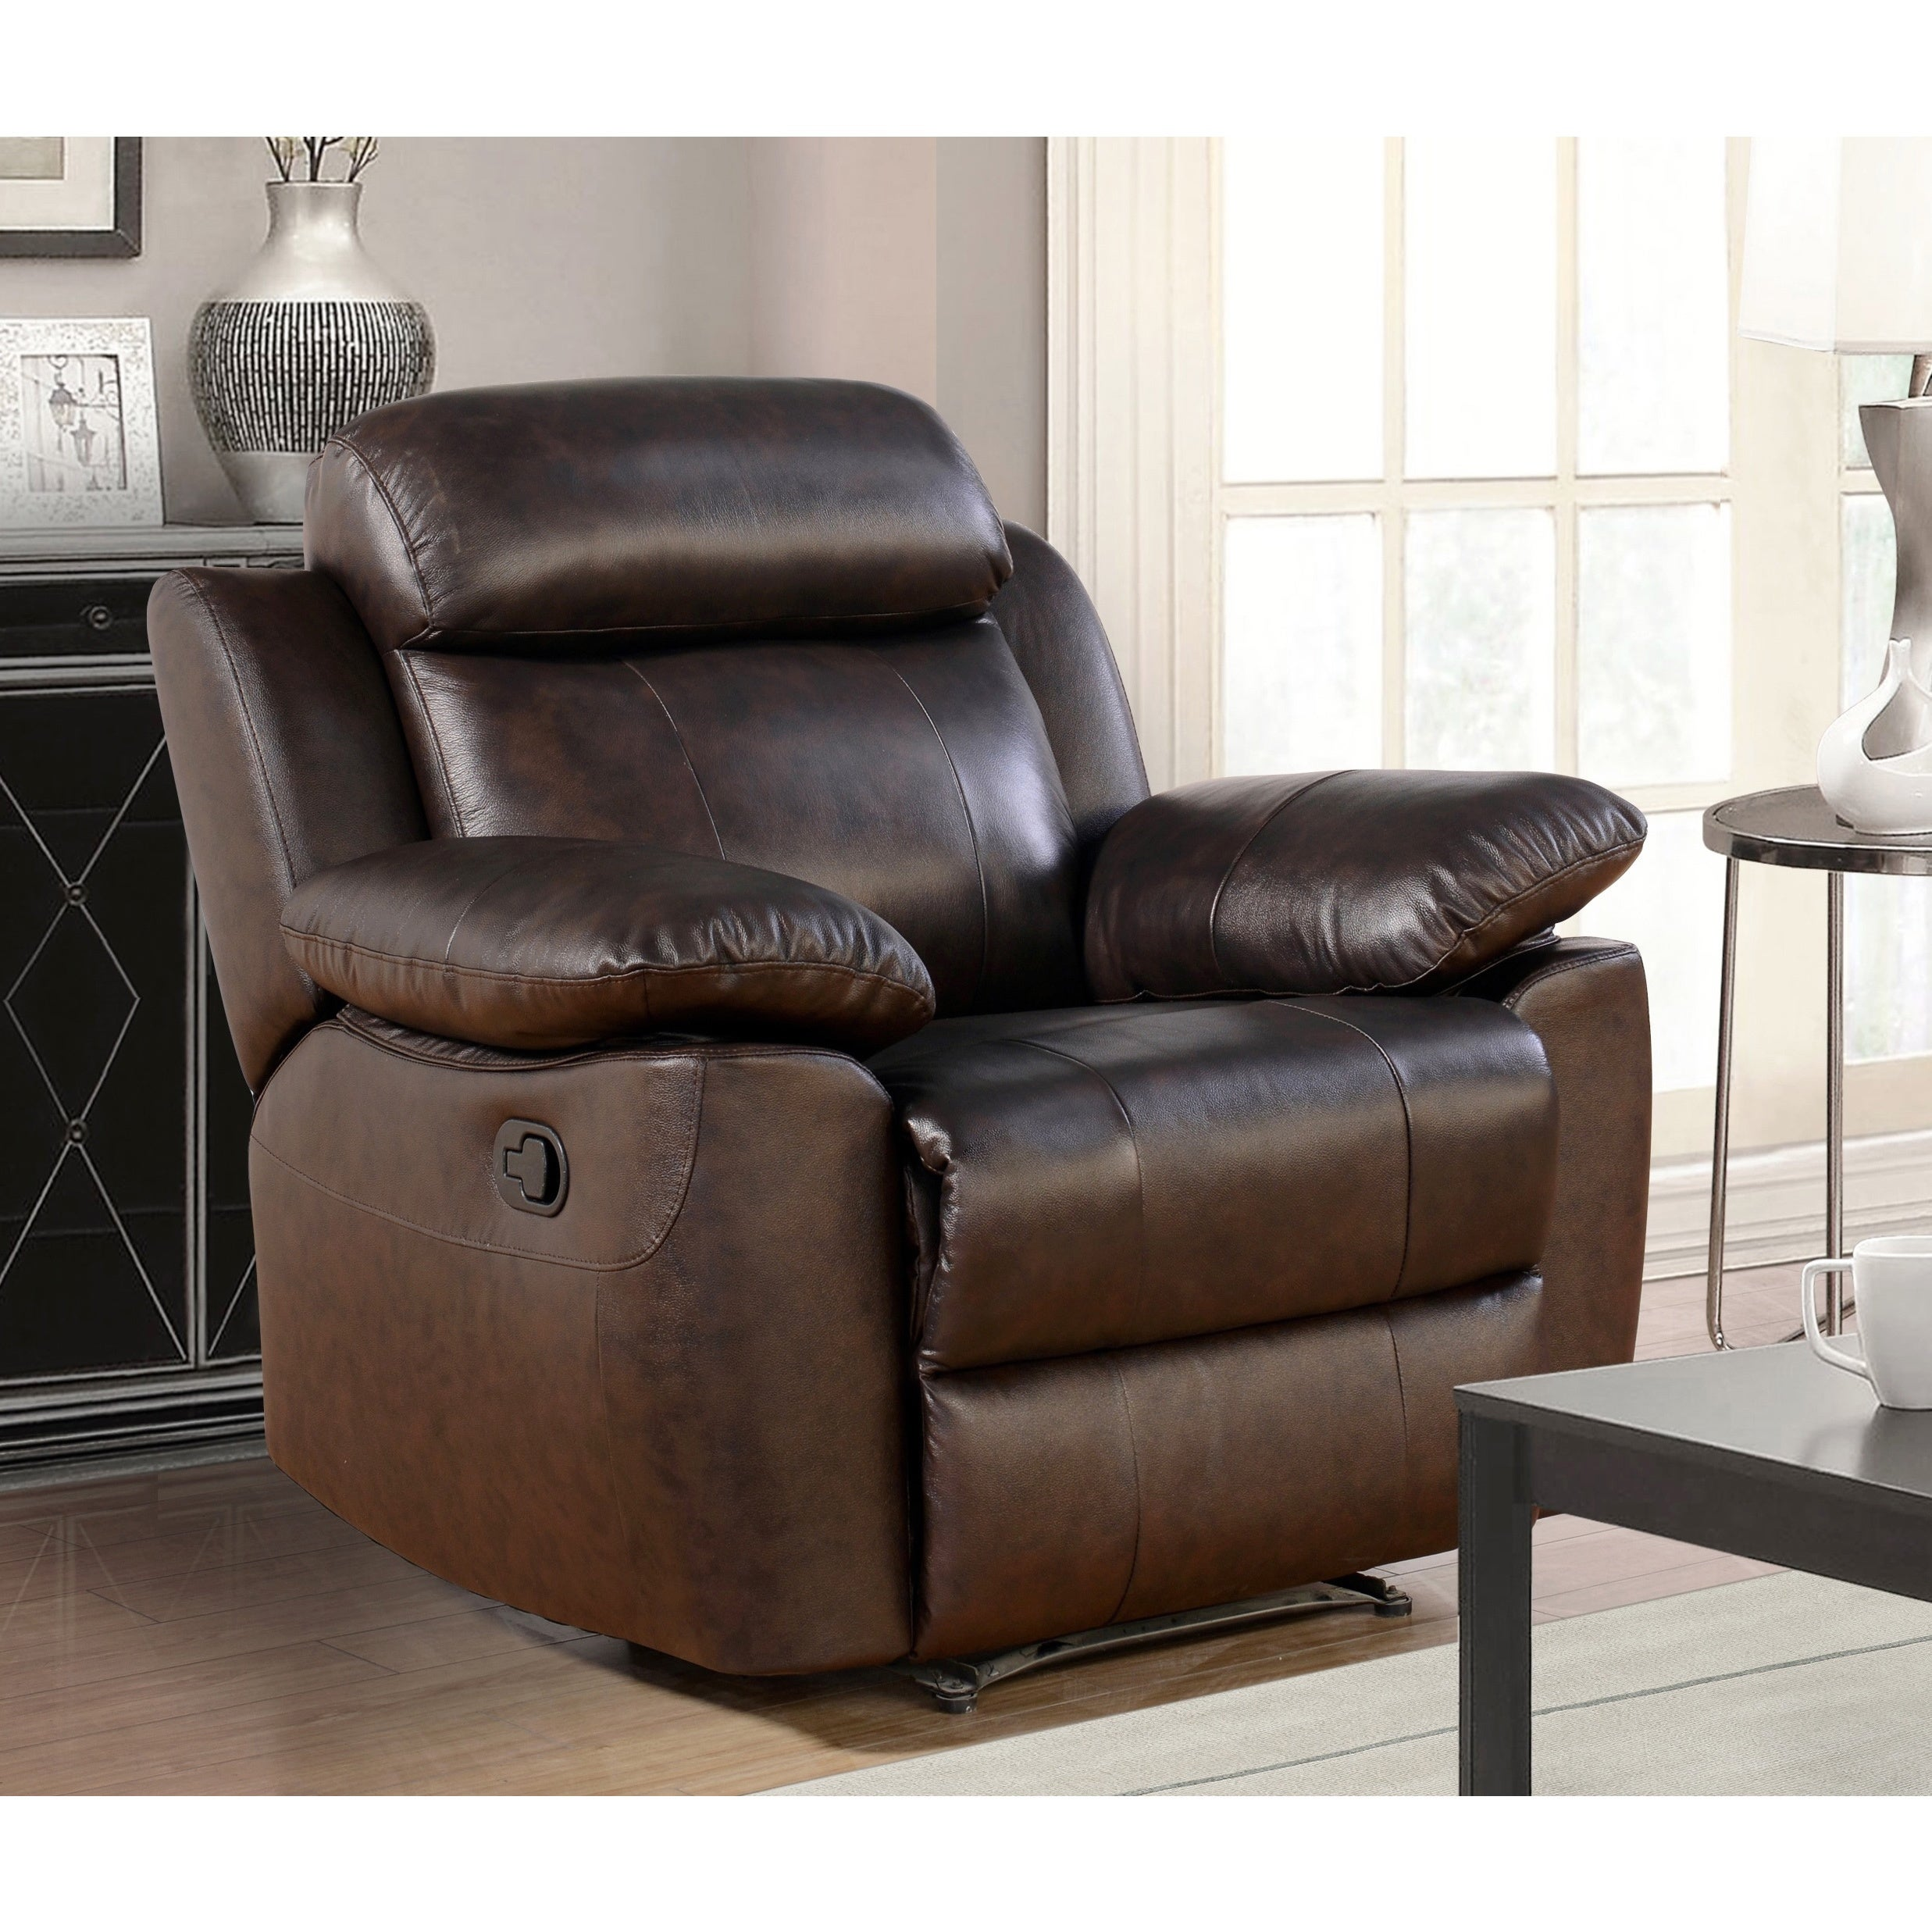 Abbyson Braylen 3 Piece Top Grain Leather Reclining Living Room